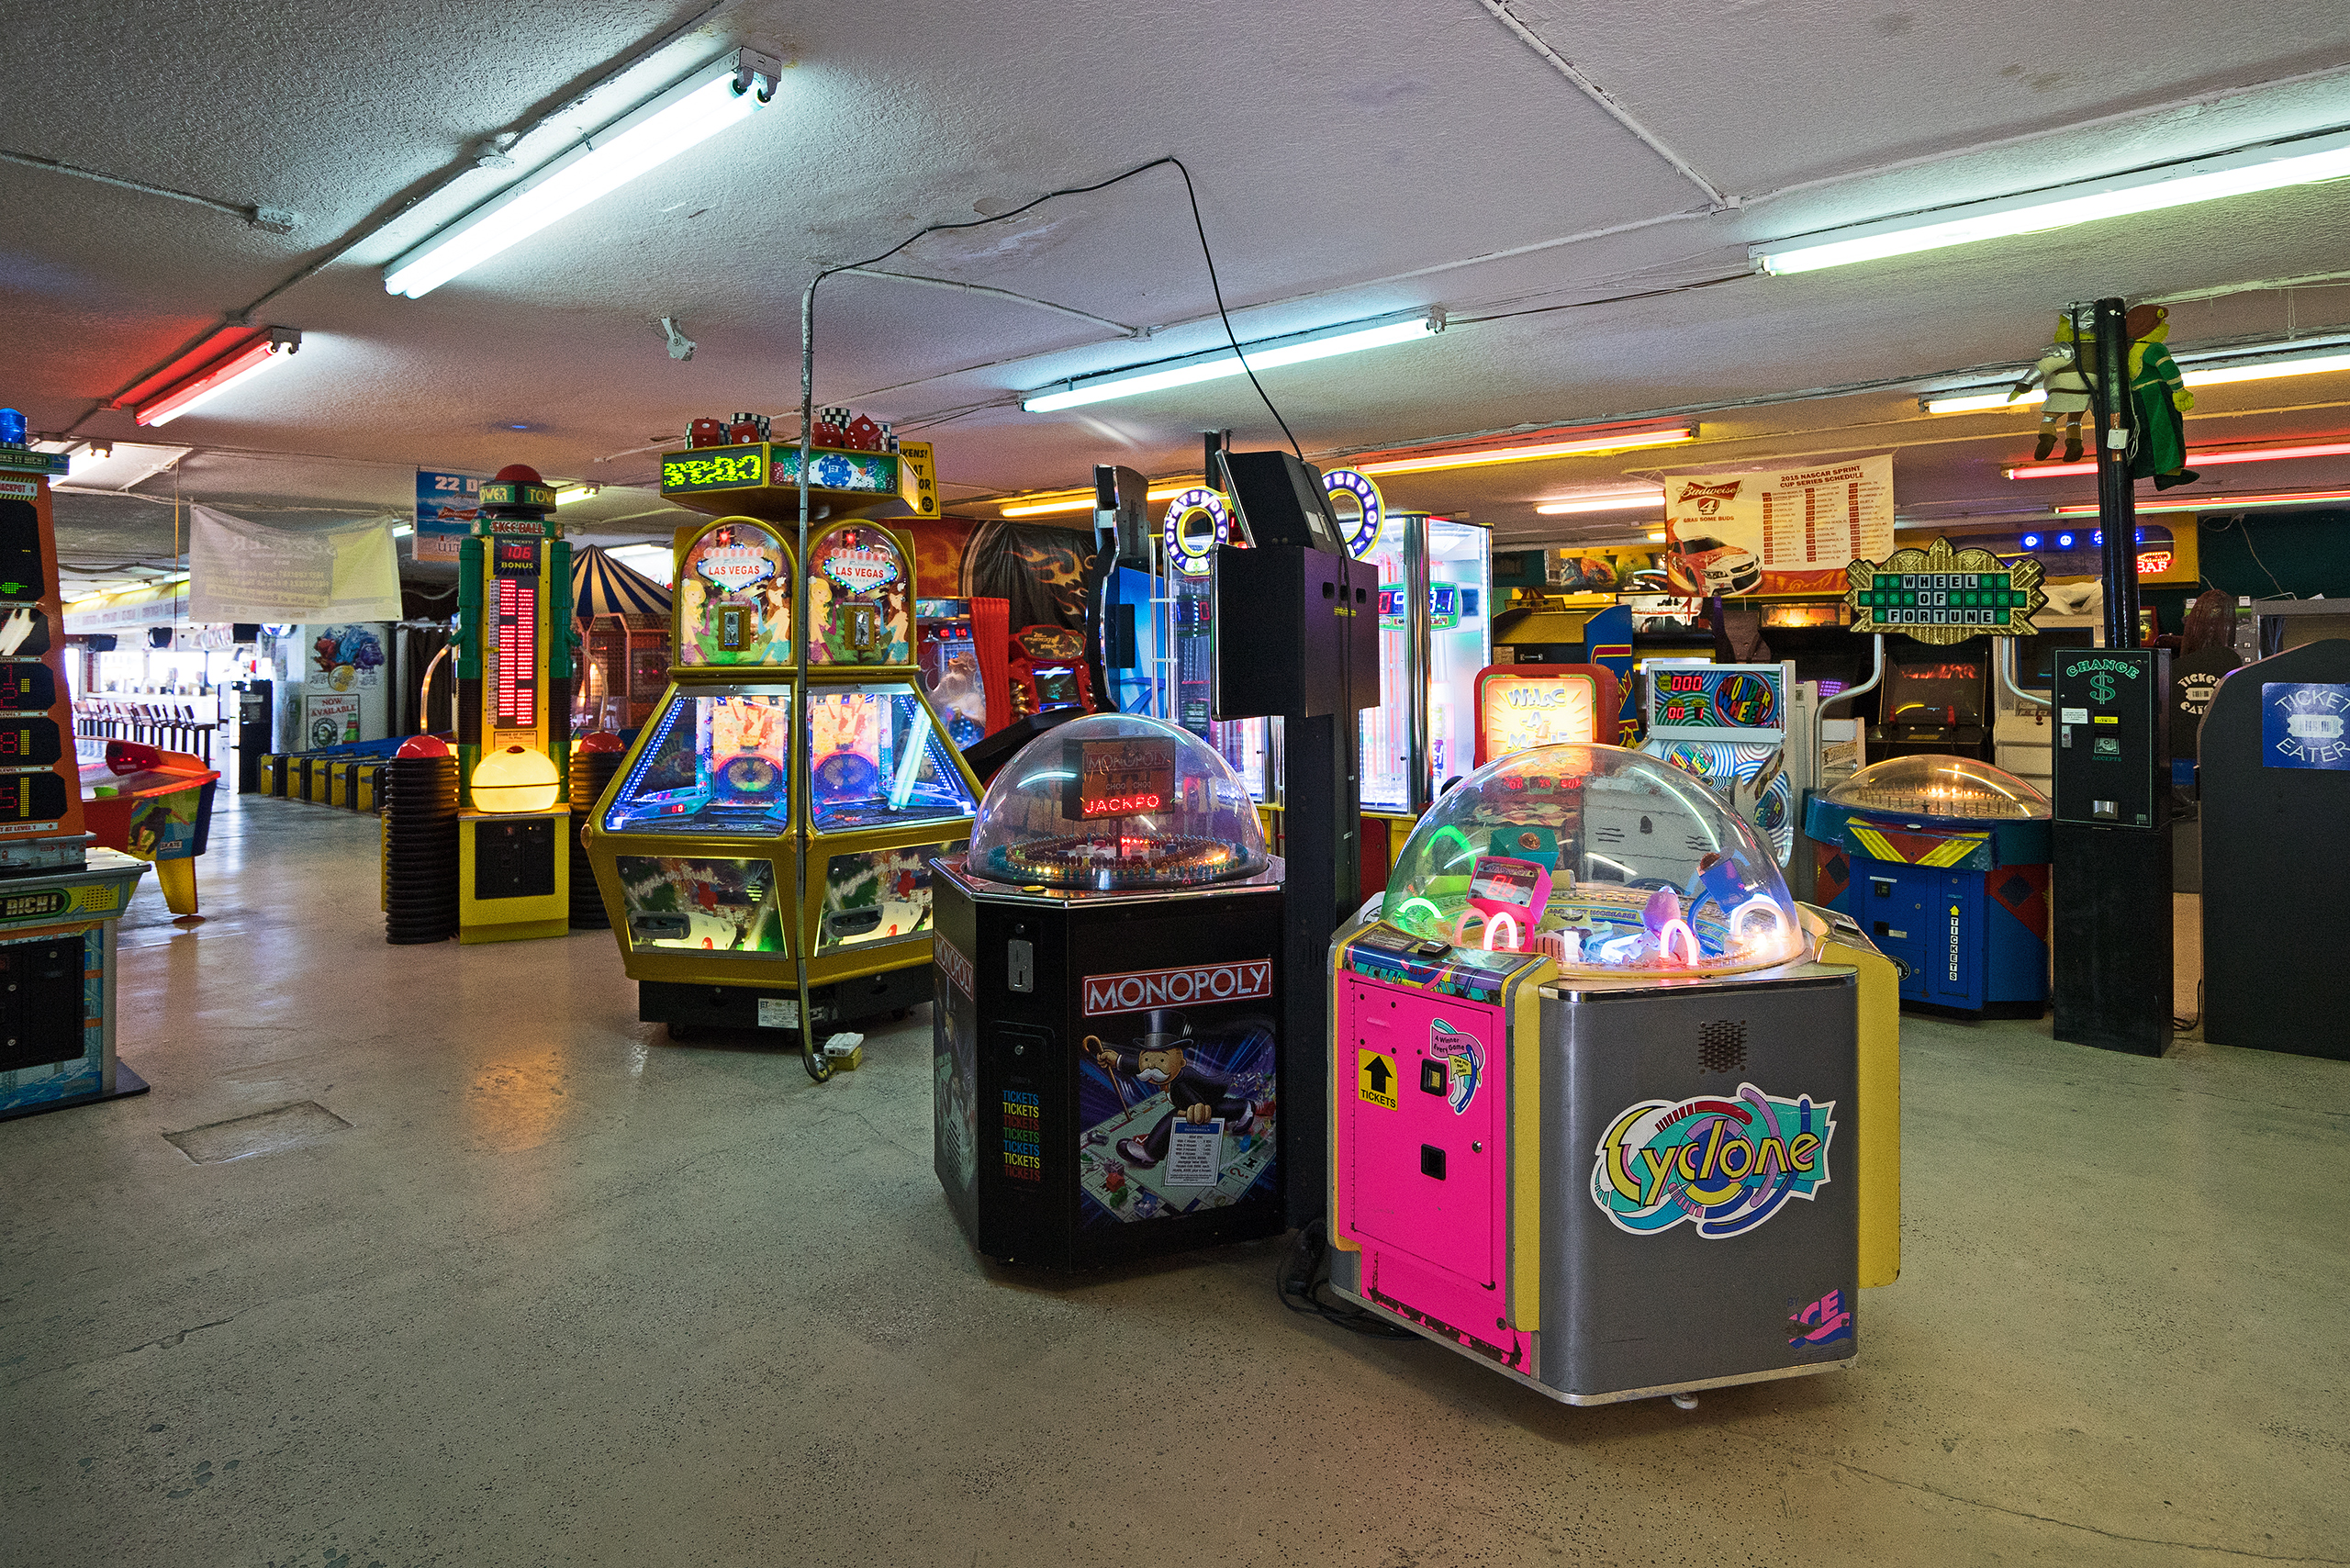 Arcade | Daytona Beach, Florida | Photo: Matthias Ries For a fistful of dollars... Interestingly one of the arcade machines is called Cyclone, just as the legendary wooden roller coaster at Coney Island, NYC.